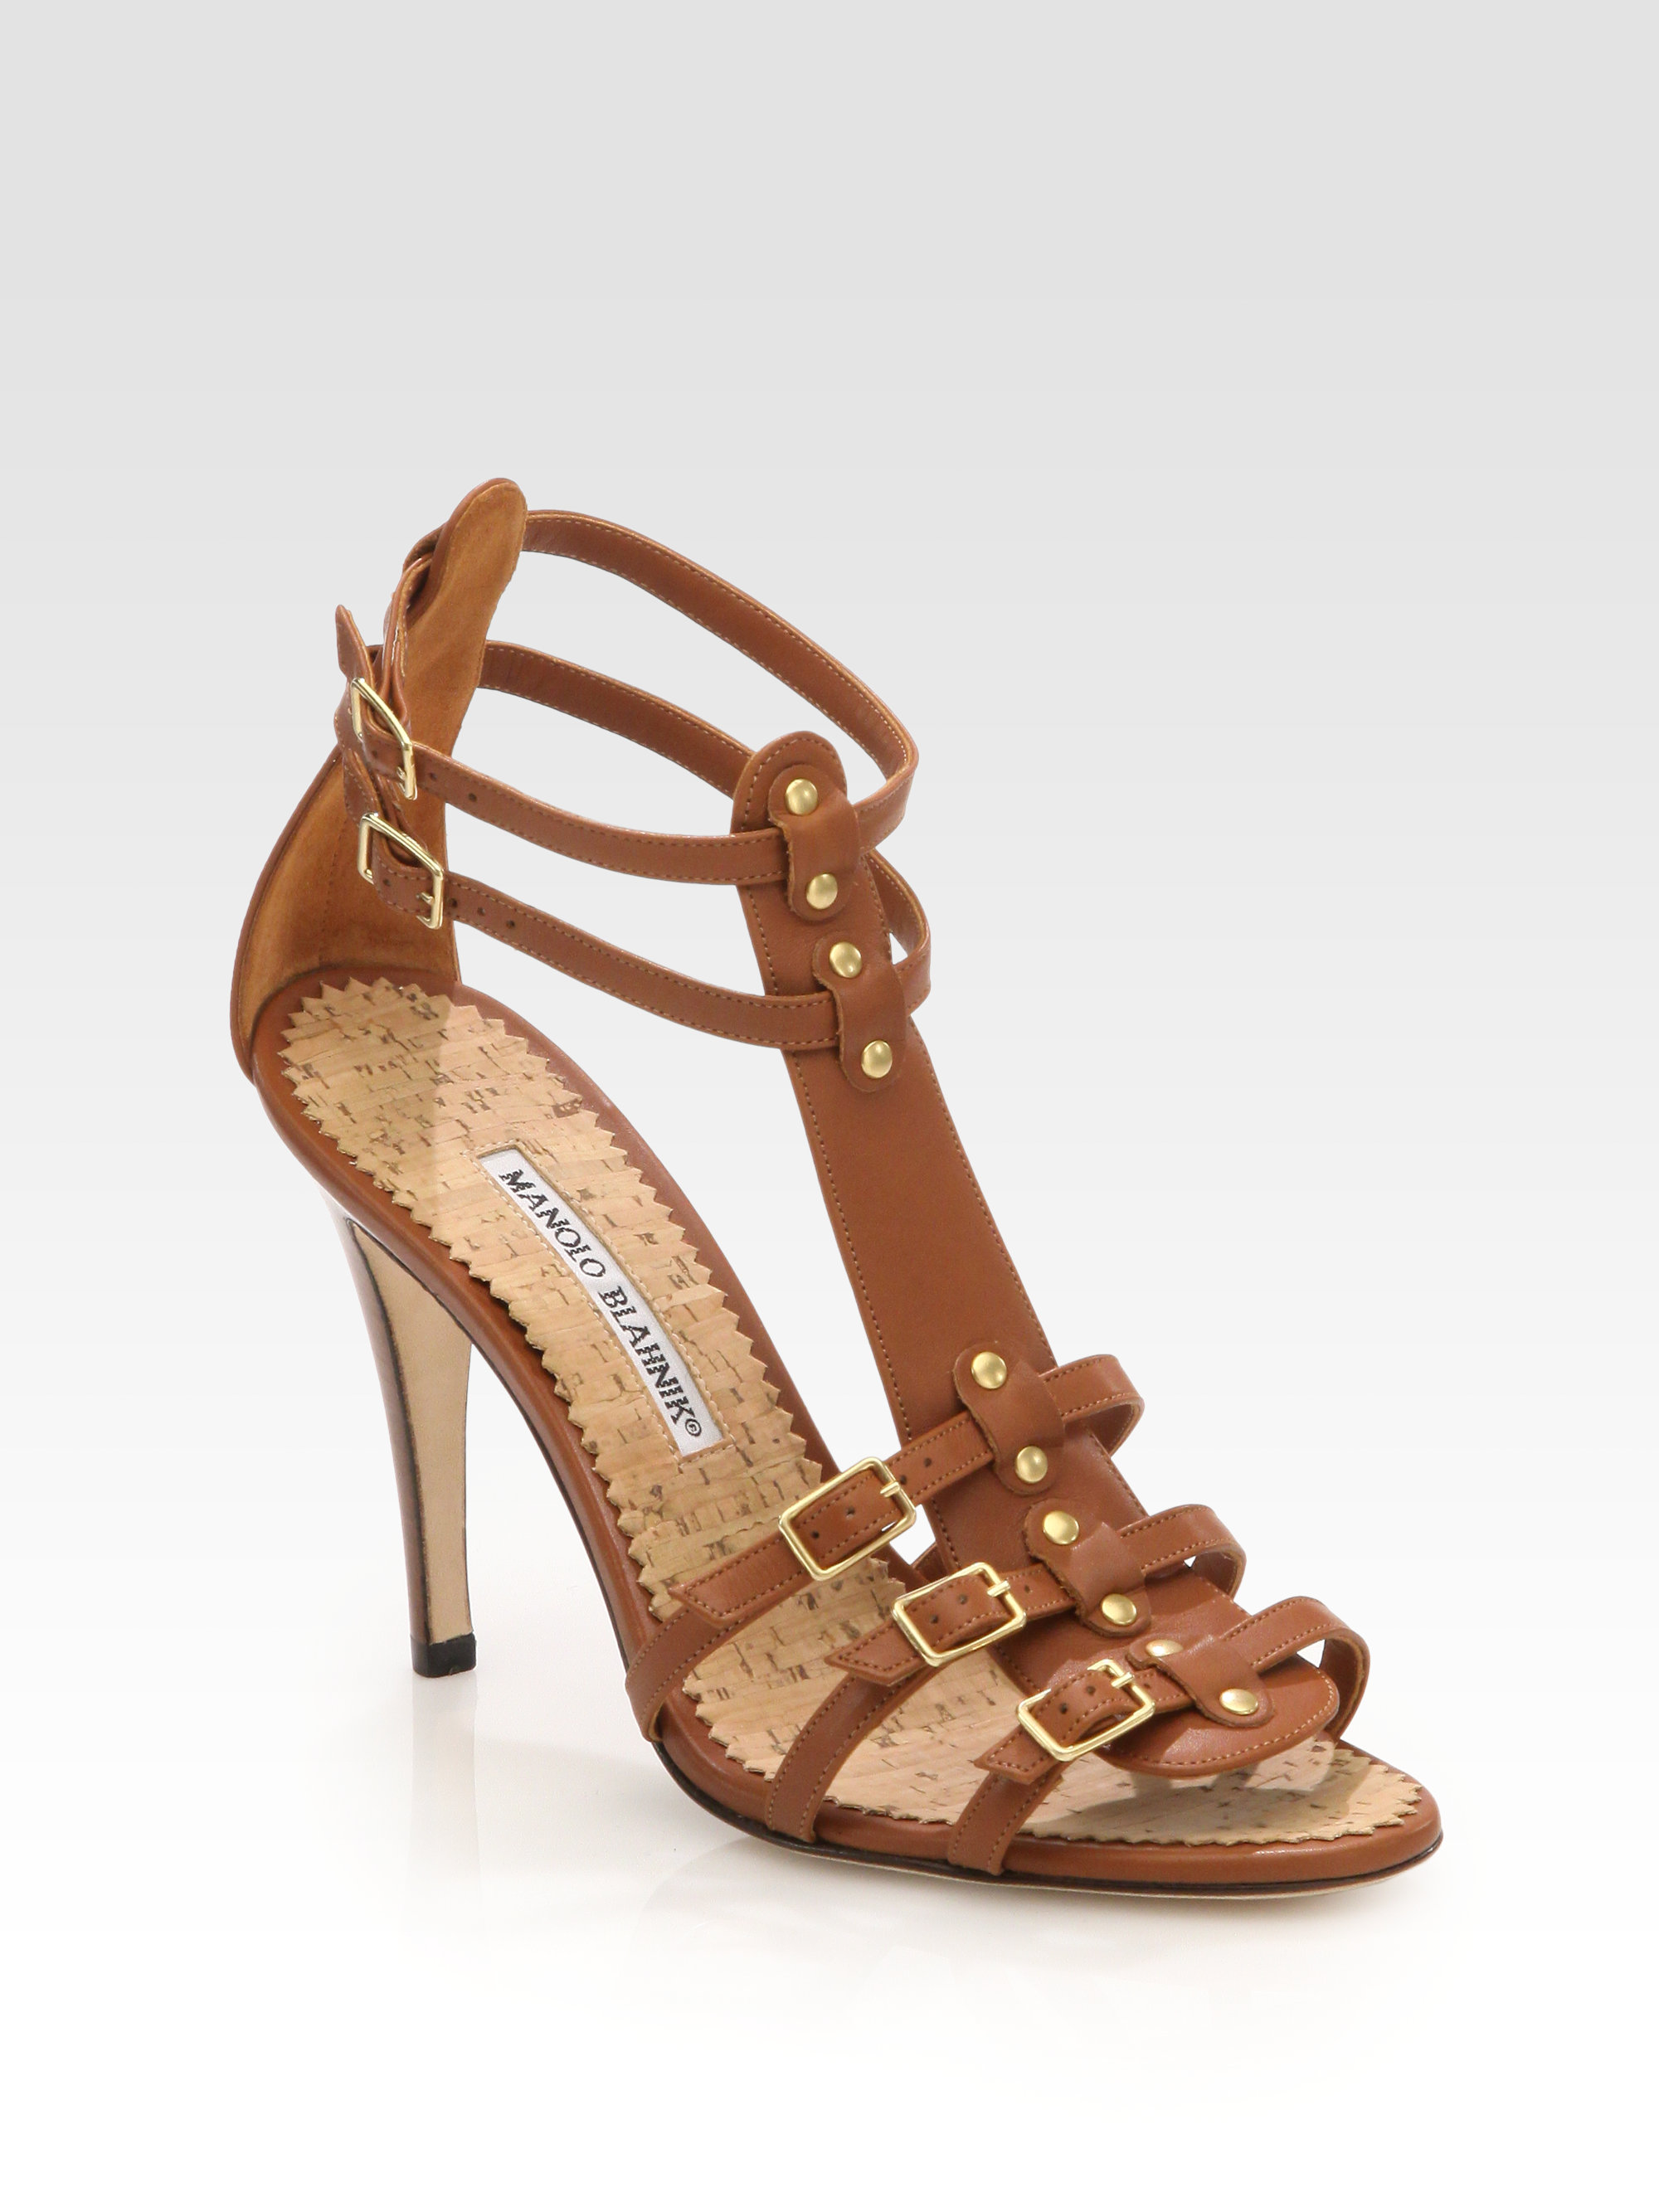 Manolo Blahnik Leather Gladiator Sandals official for sale outlet wiki professional cheap price clearance amazon finishline Z9at3UFbK